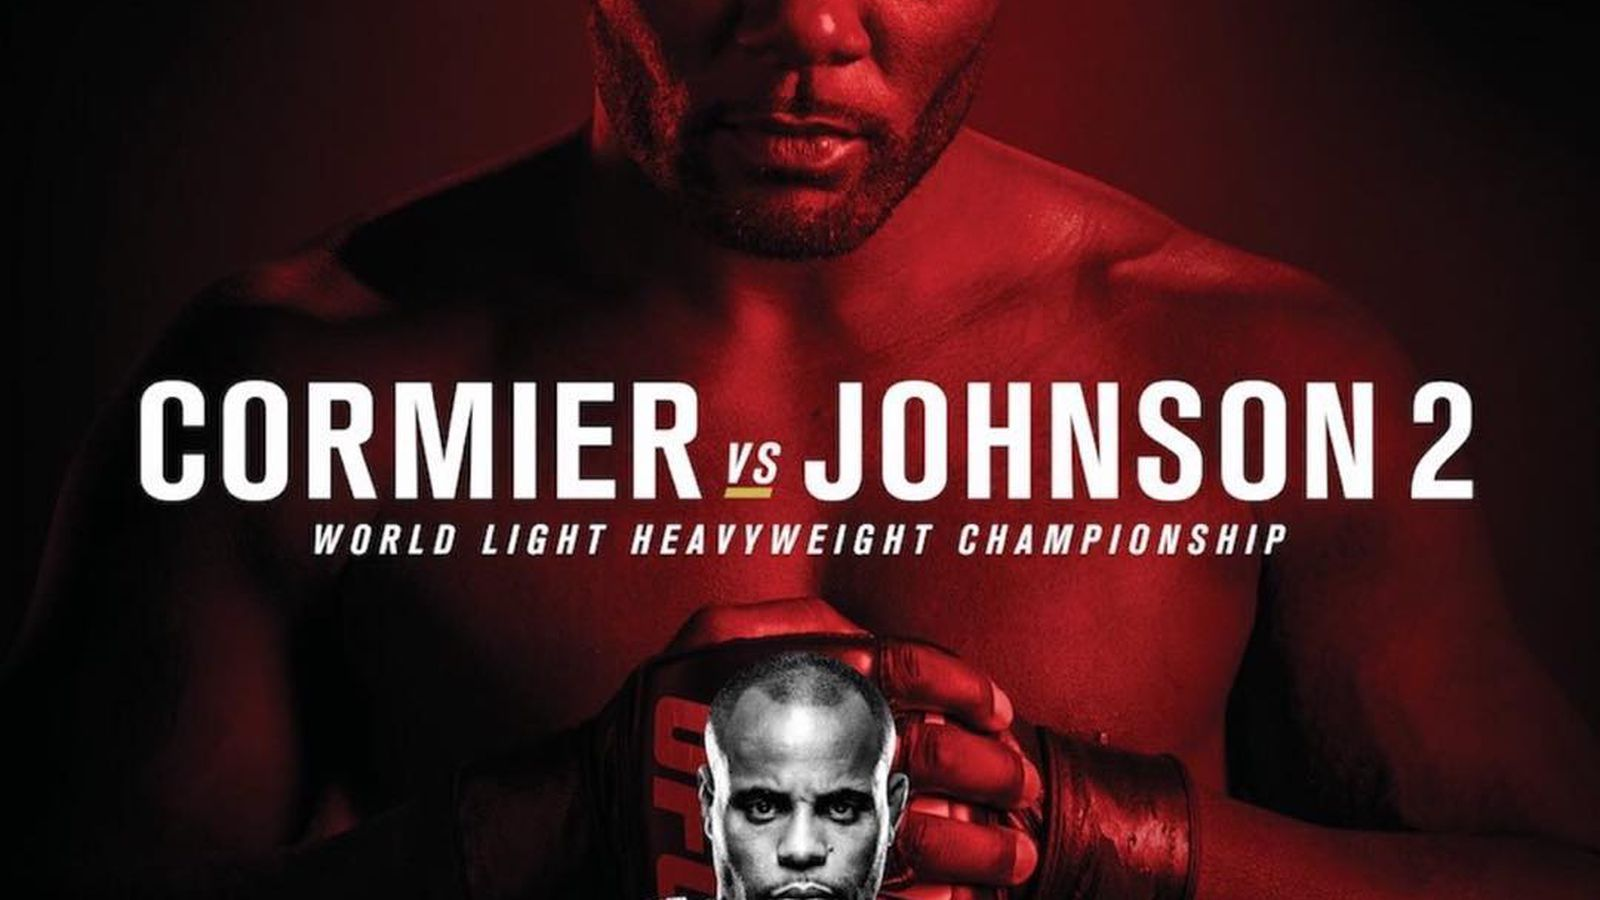 UFC 210 poster: Daniel Cormier looks like Pinhead from Puppet Master ... and he's NOT happy about it